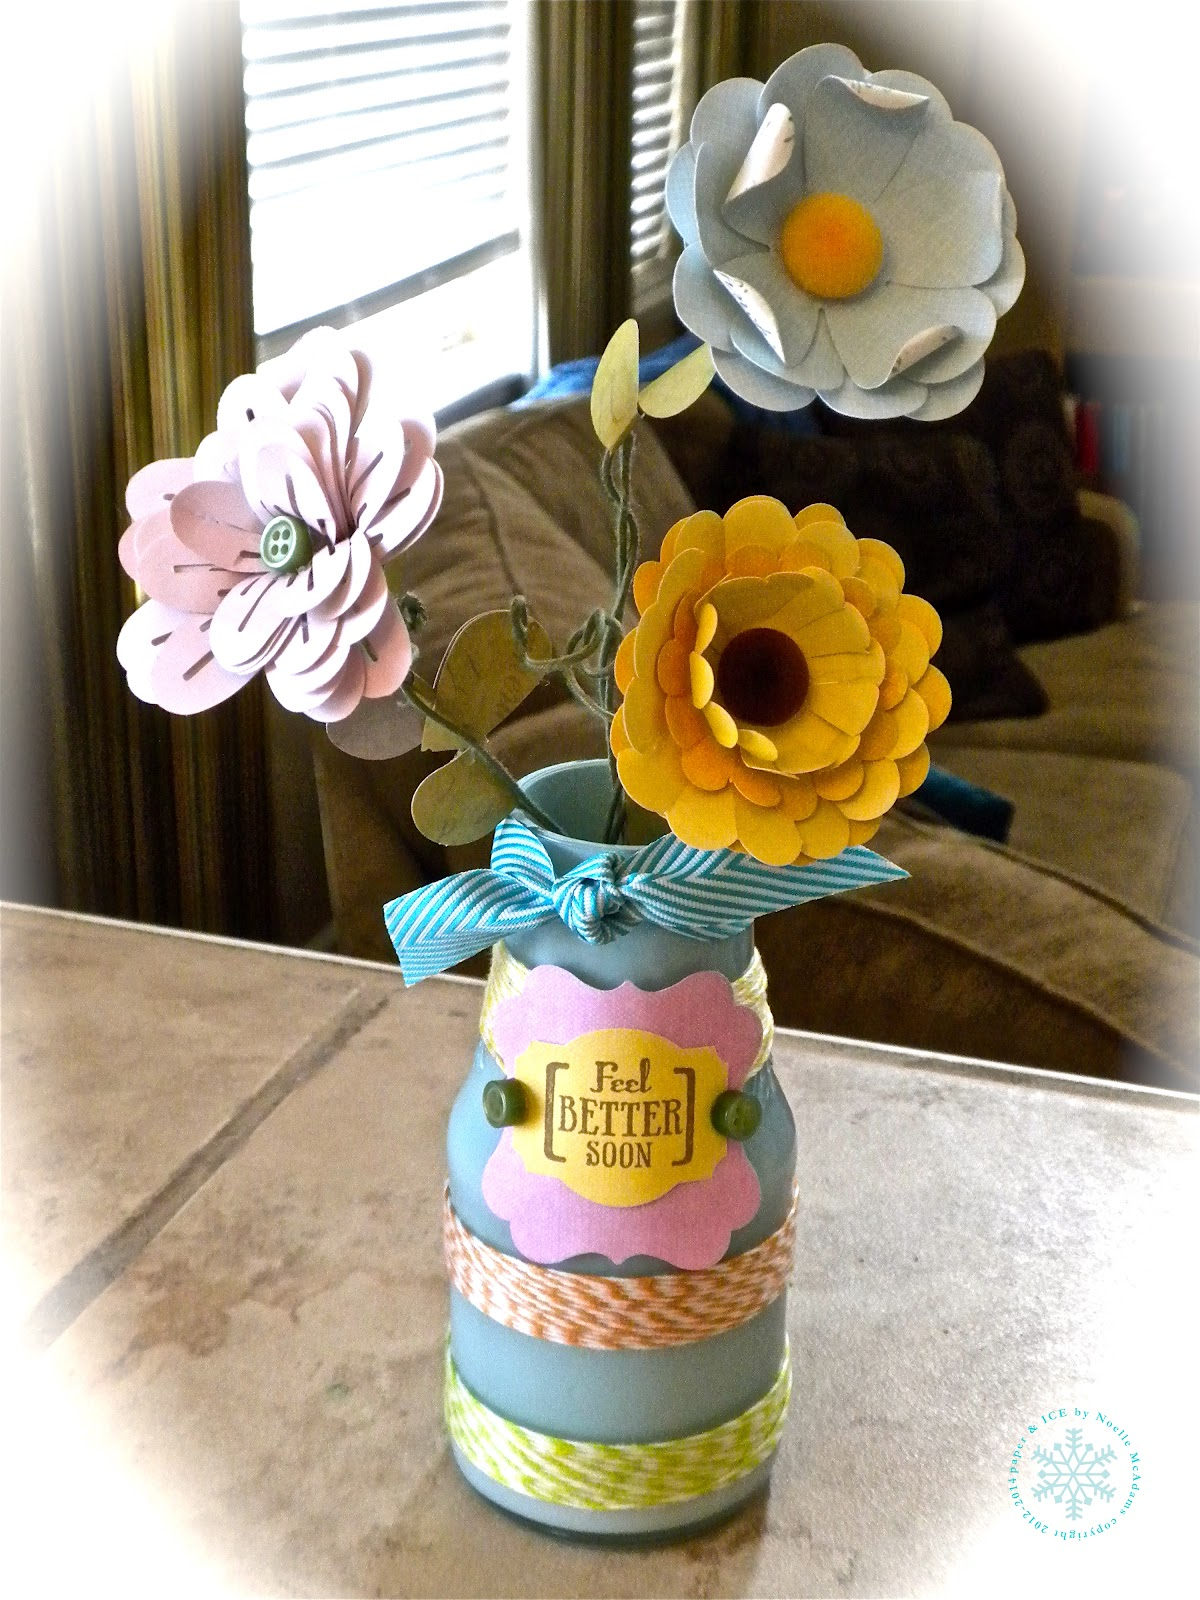 Paper ice handmade paper flowers in a recycled vase spotted handmade paper flowers in a recycled vase spotted canary challenge mightylinksfo